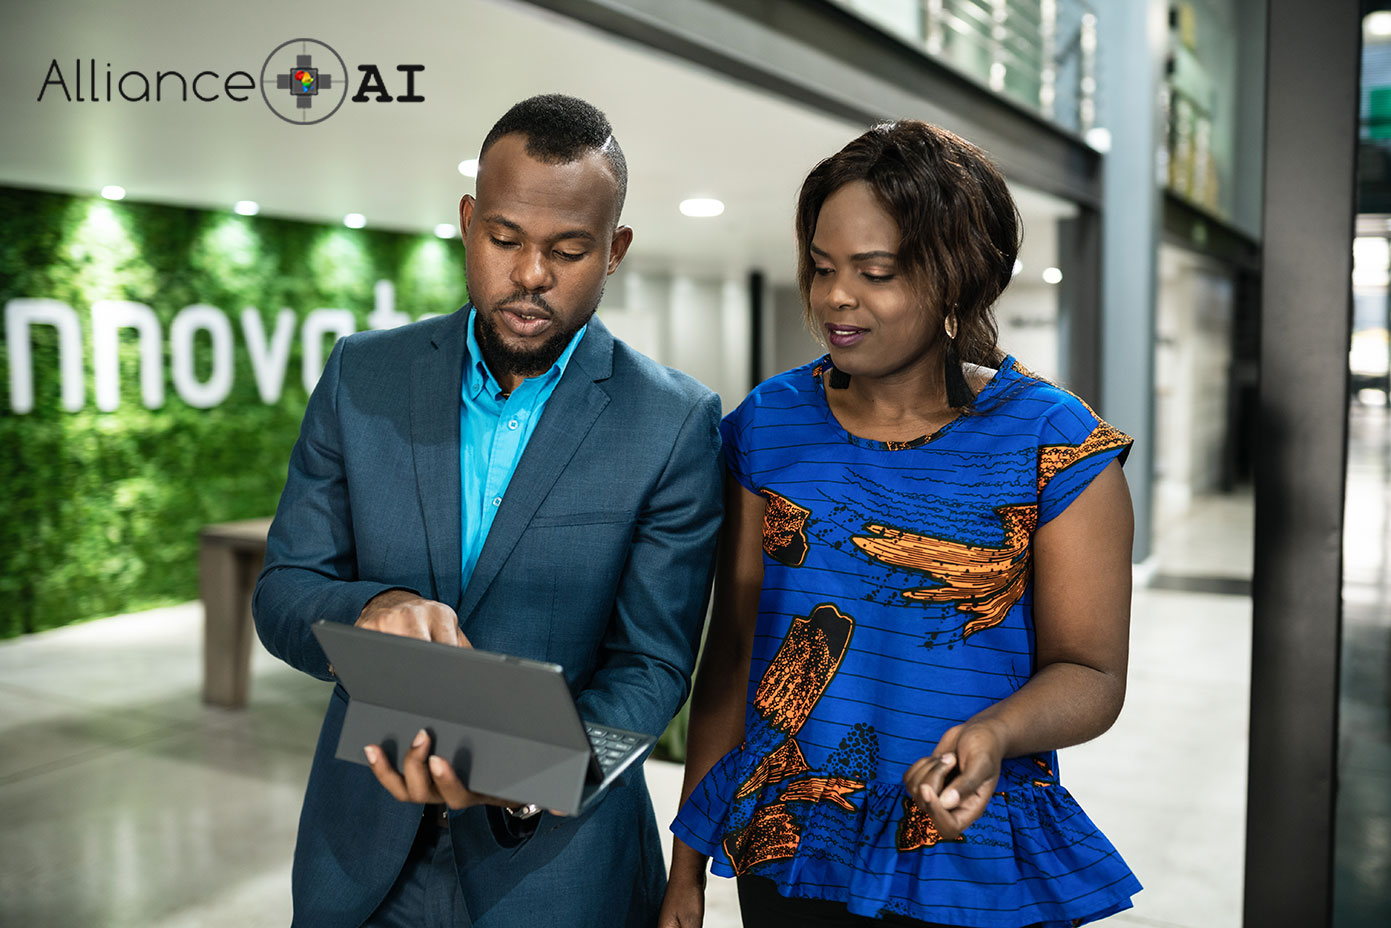 Meet Alexander Tsado, CEO of Alliance4ai, the non-profit helping Africa's ecosystem realize the promise of AI.